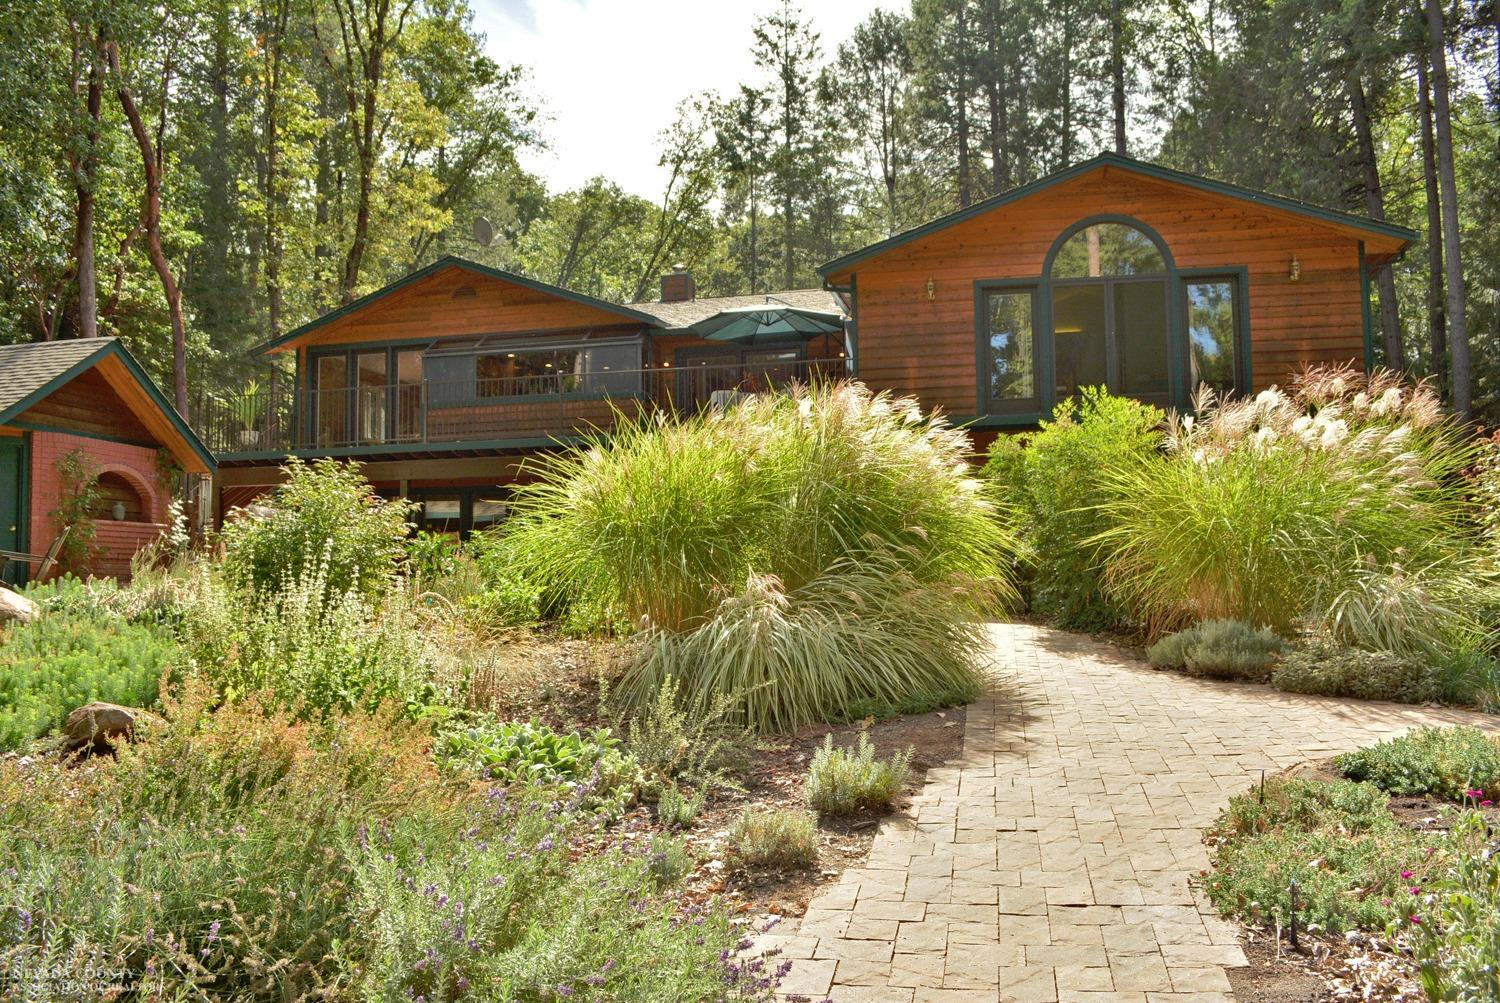 13068 Madrona Leaf Ct, Grass Valley, California 95945